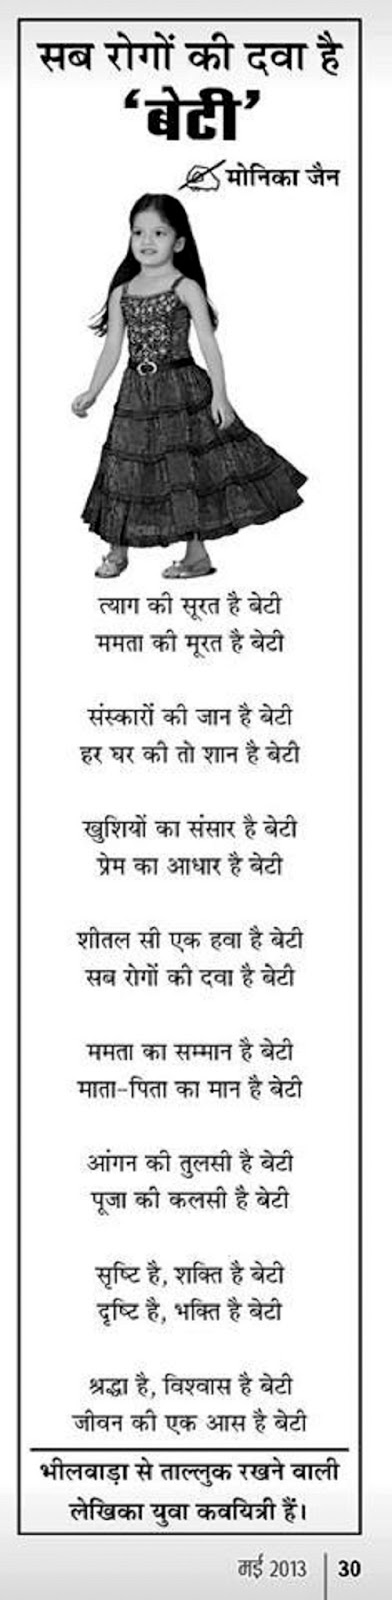 Poem on Daughter (Beti) in Hindi